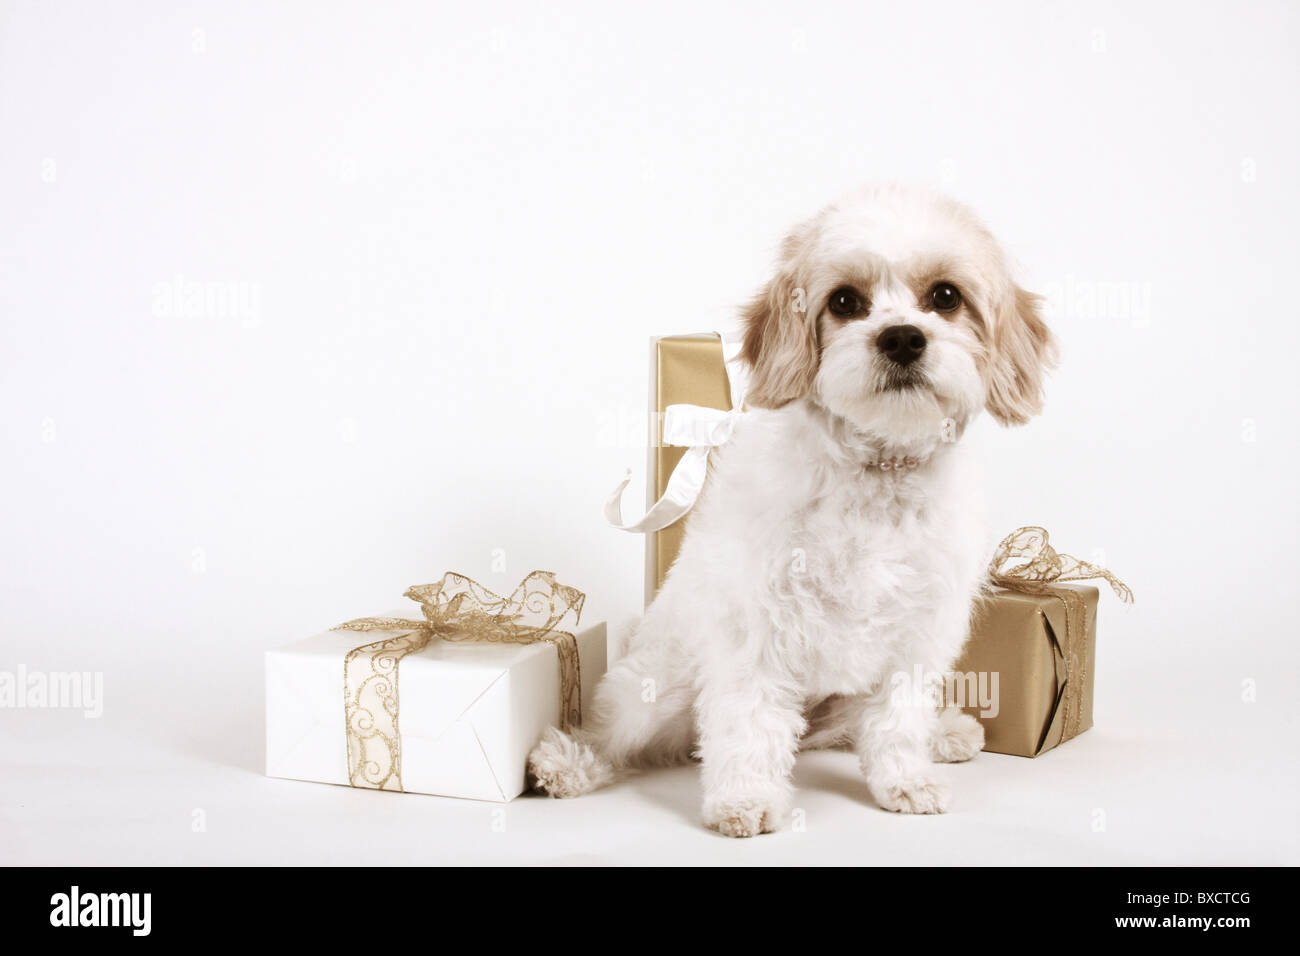 Giving Holidays Gifts To Your Dog Stock Photos & Giving Holidays ...